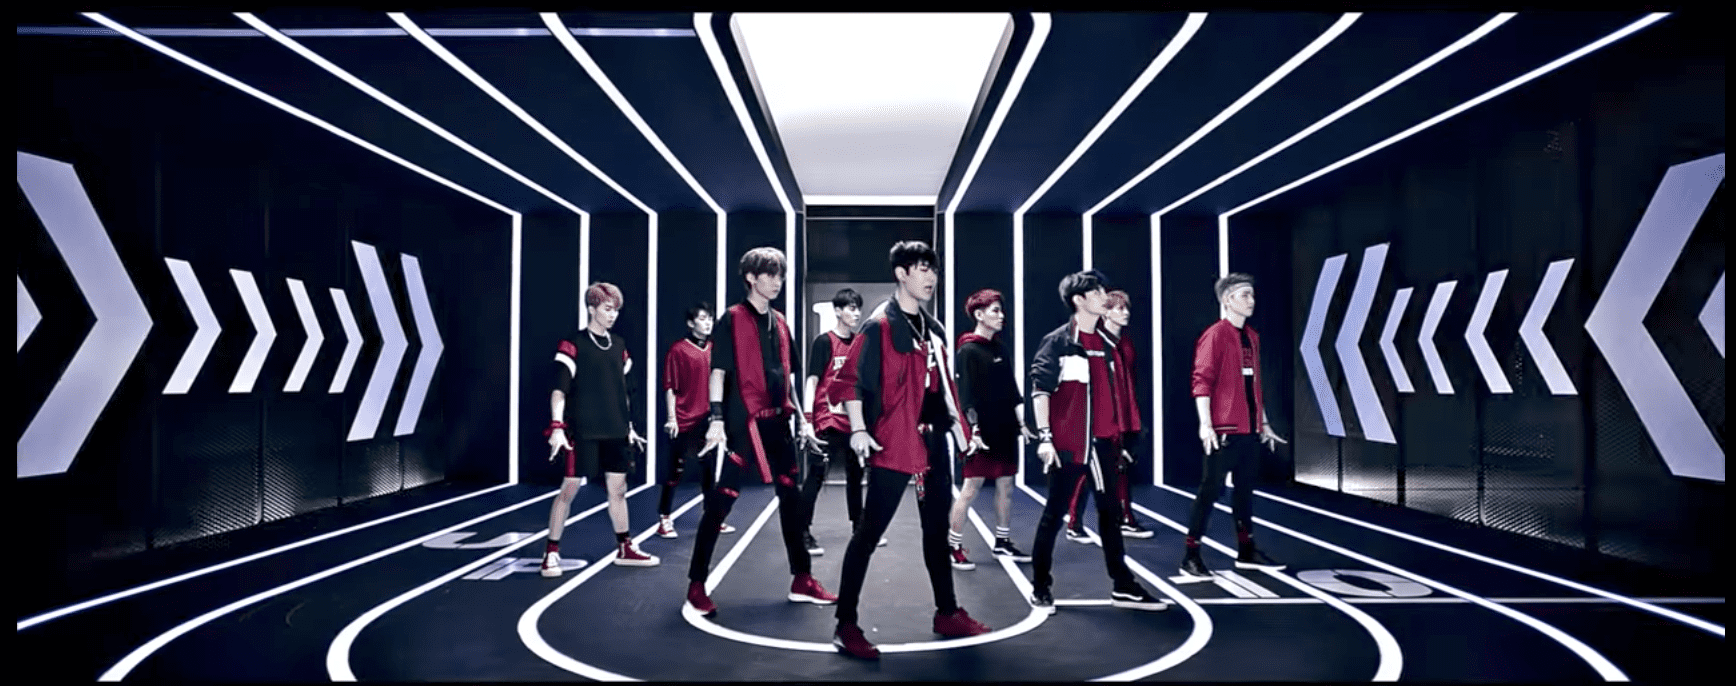 "Watch: UP10TION Shows Off Their Flashy Footwork In Dance Version Of ""Runner"" MV"